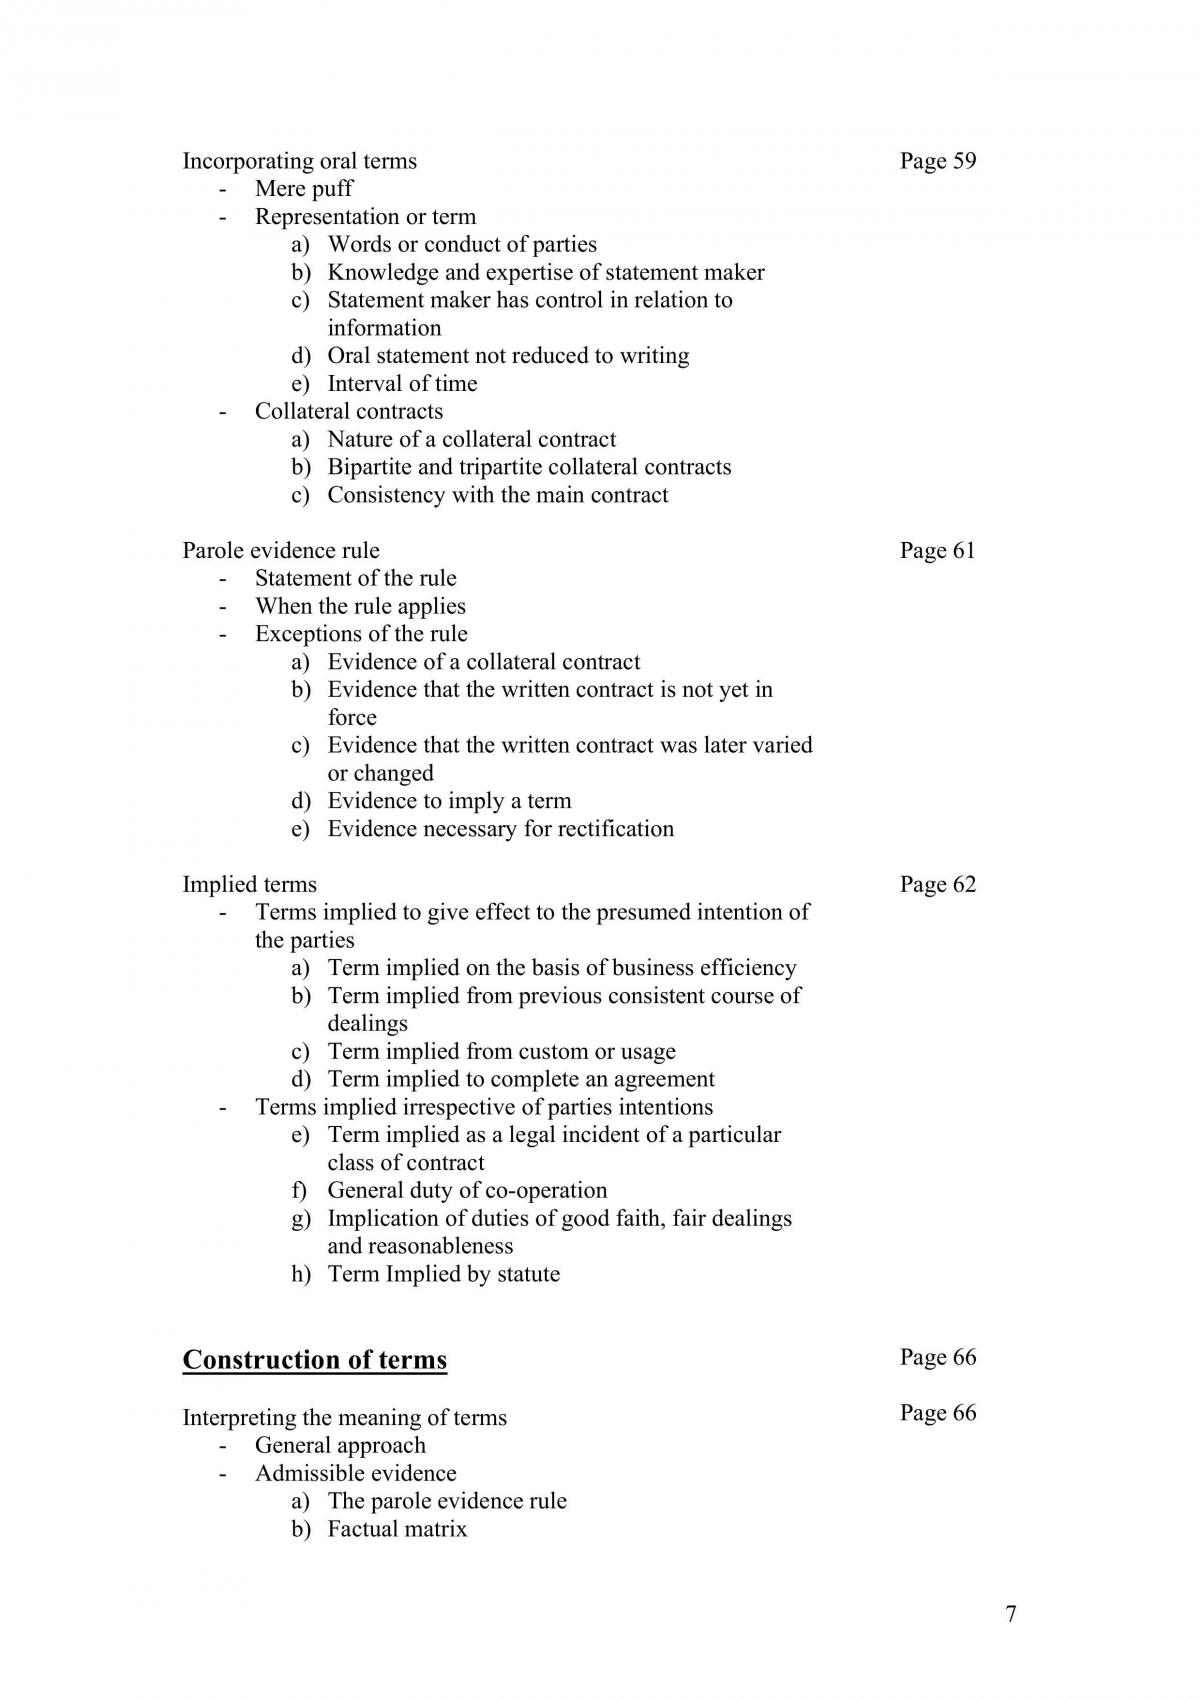 Complete Contracts Notes  - Page 7